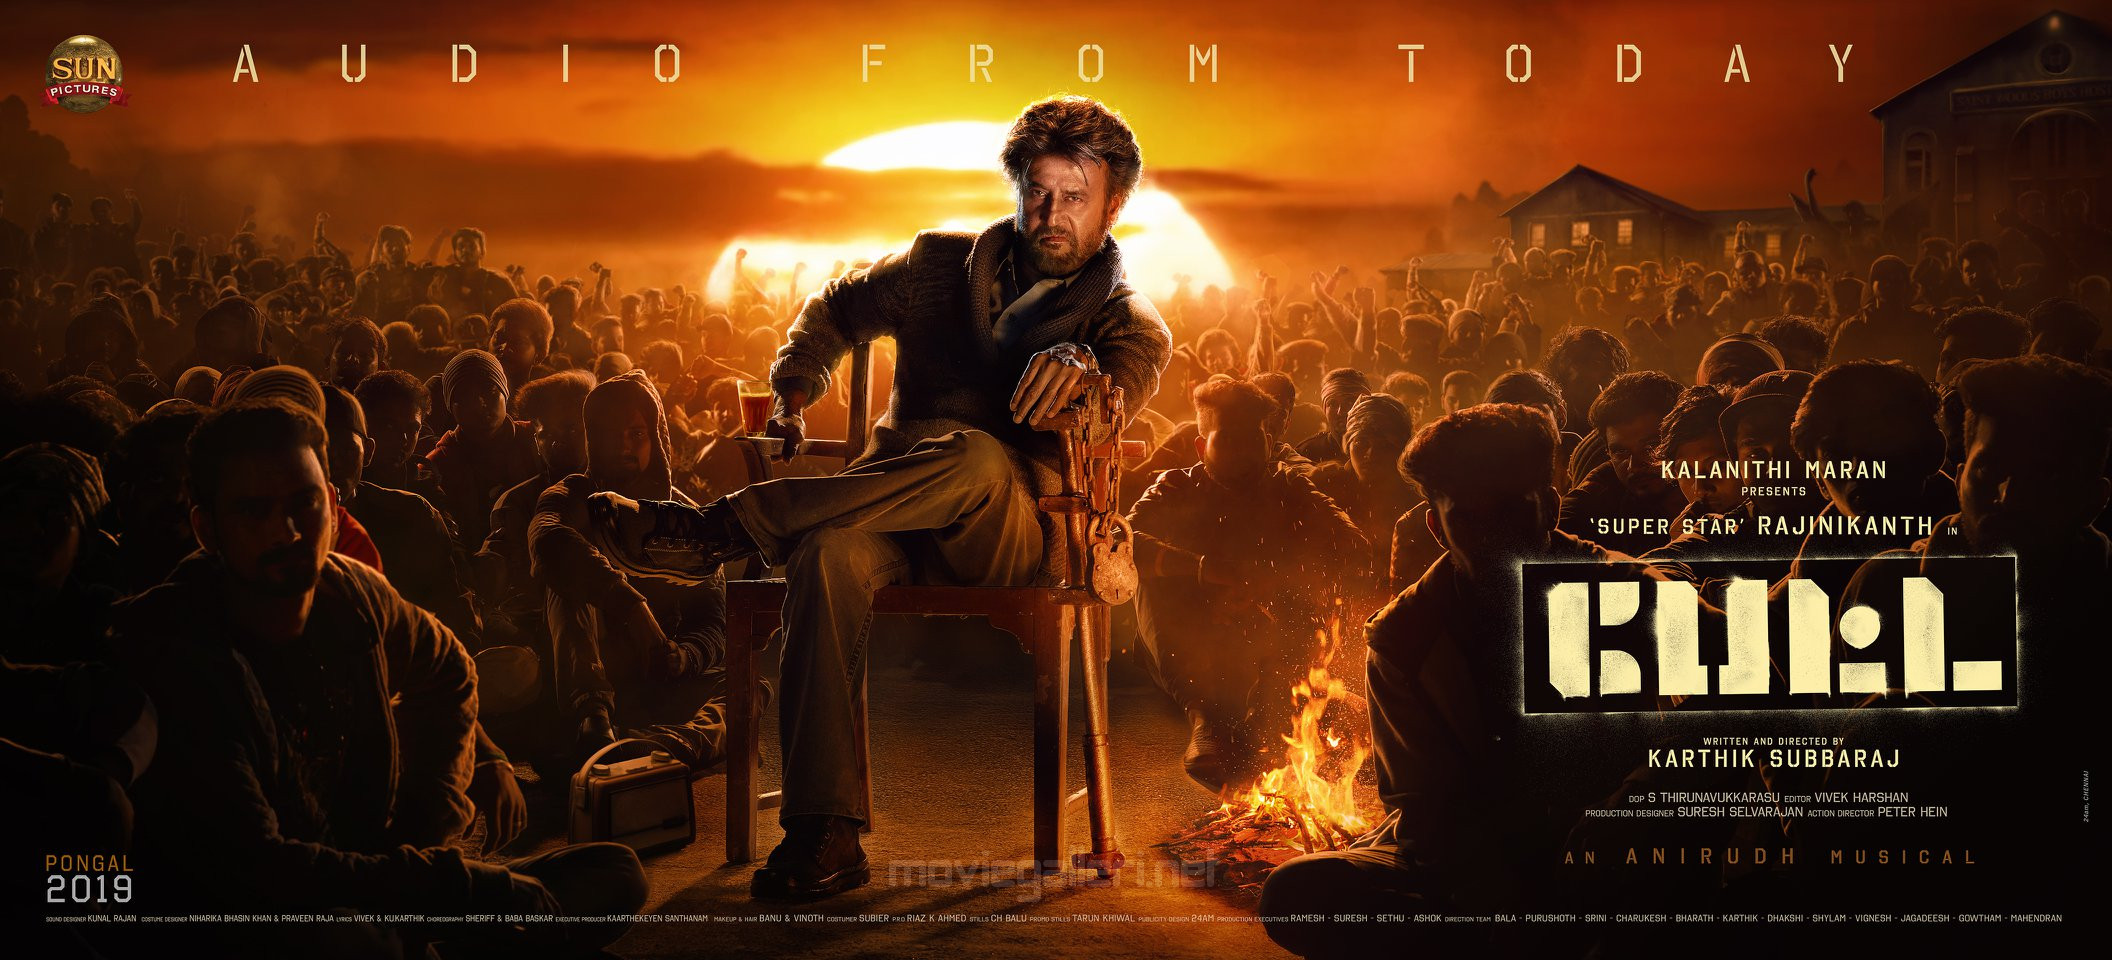 Rajinikanth Petta Audio Release Today Poster HD